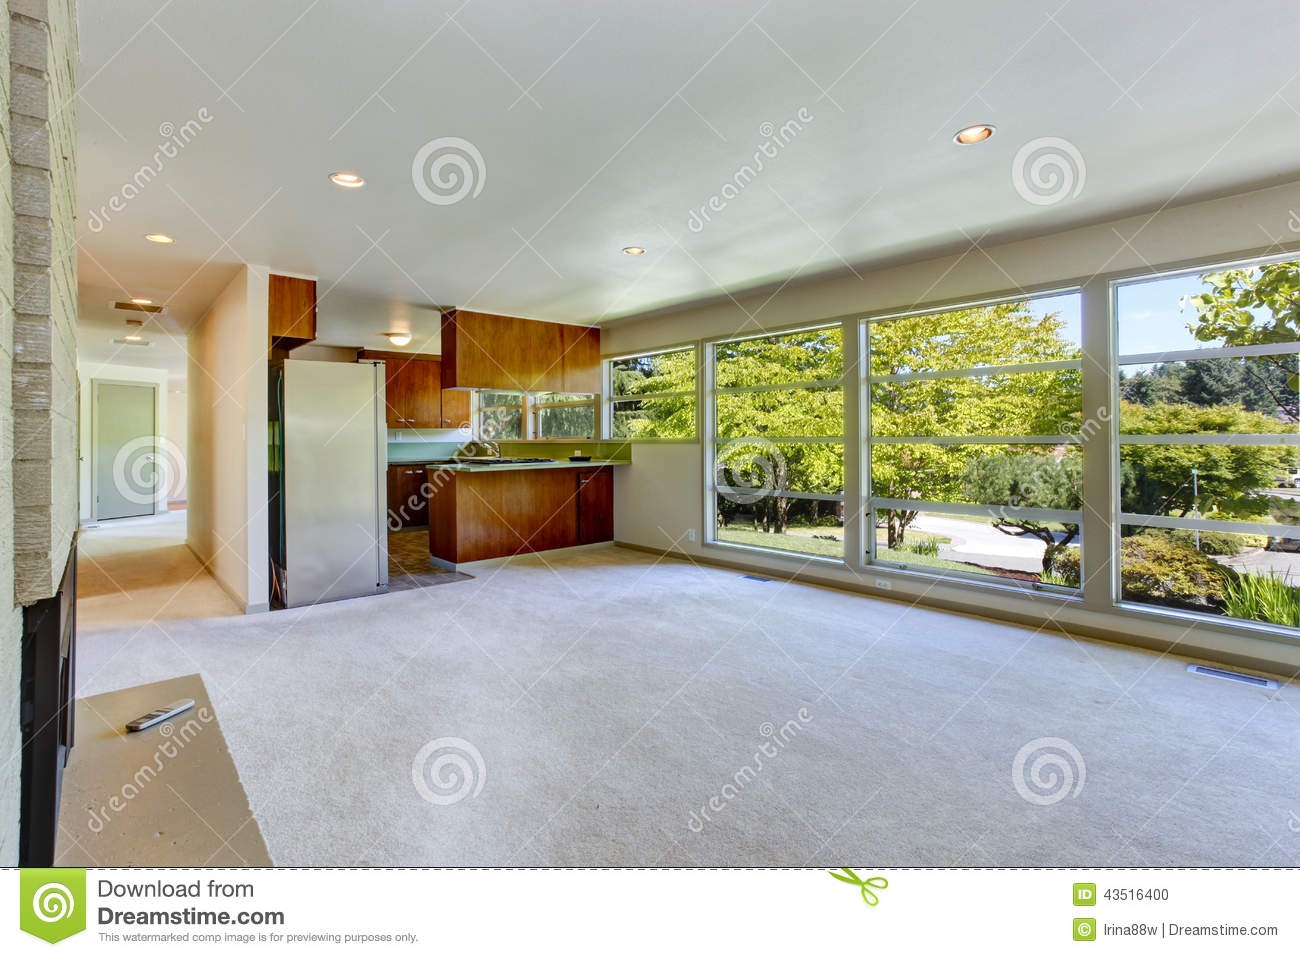 Empty house interior with open floor plan living room Opening glass walls